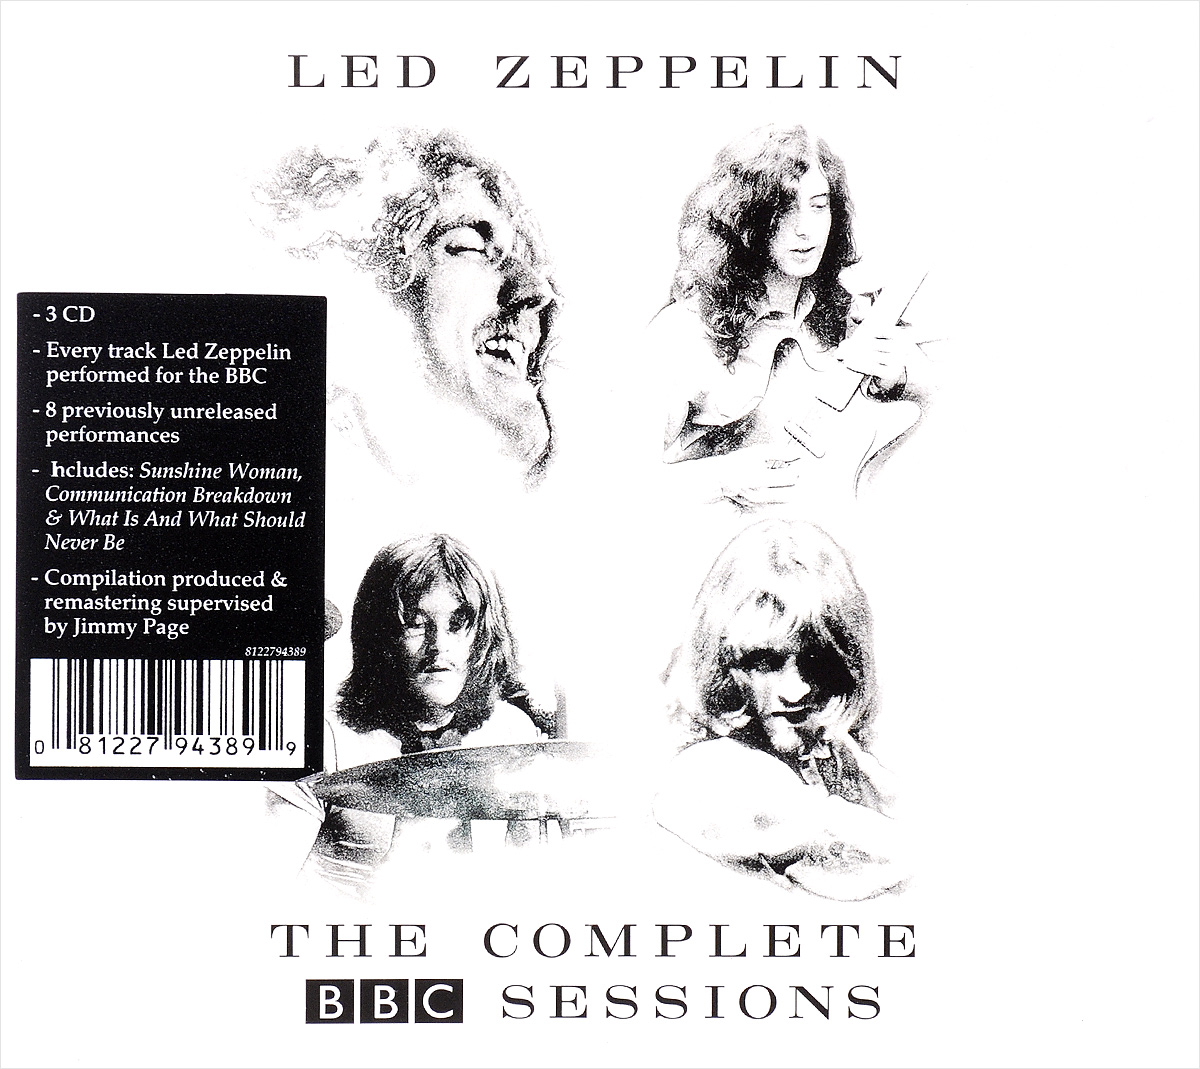 Led Zeppelin Led Zeppelin. The Complete BBC Sessions (3 CD) cd led zeppelin the complete bbc sessions deluxe